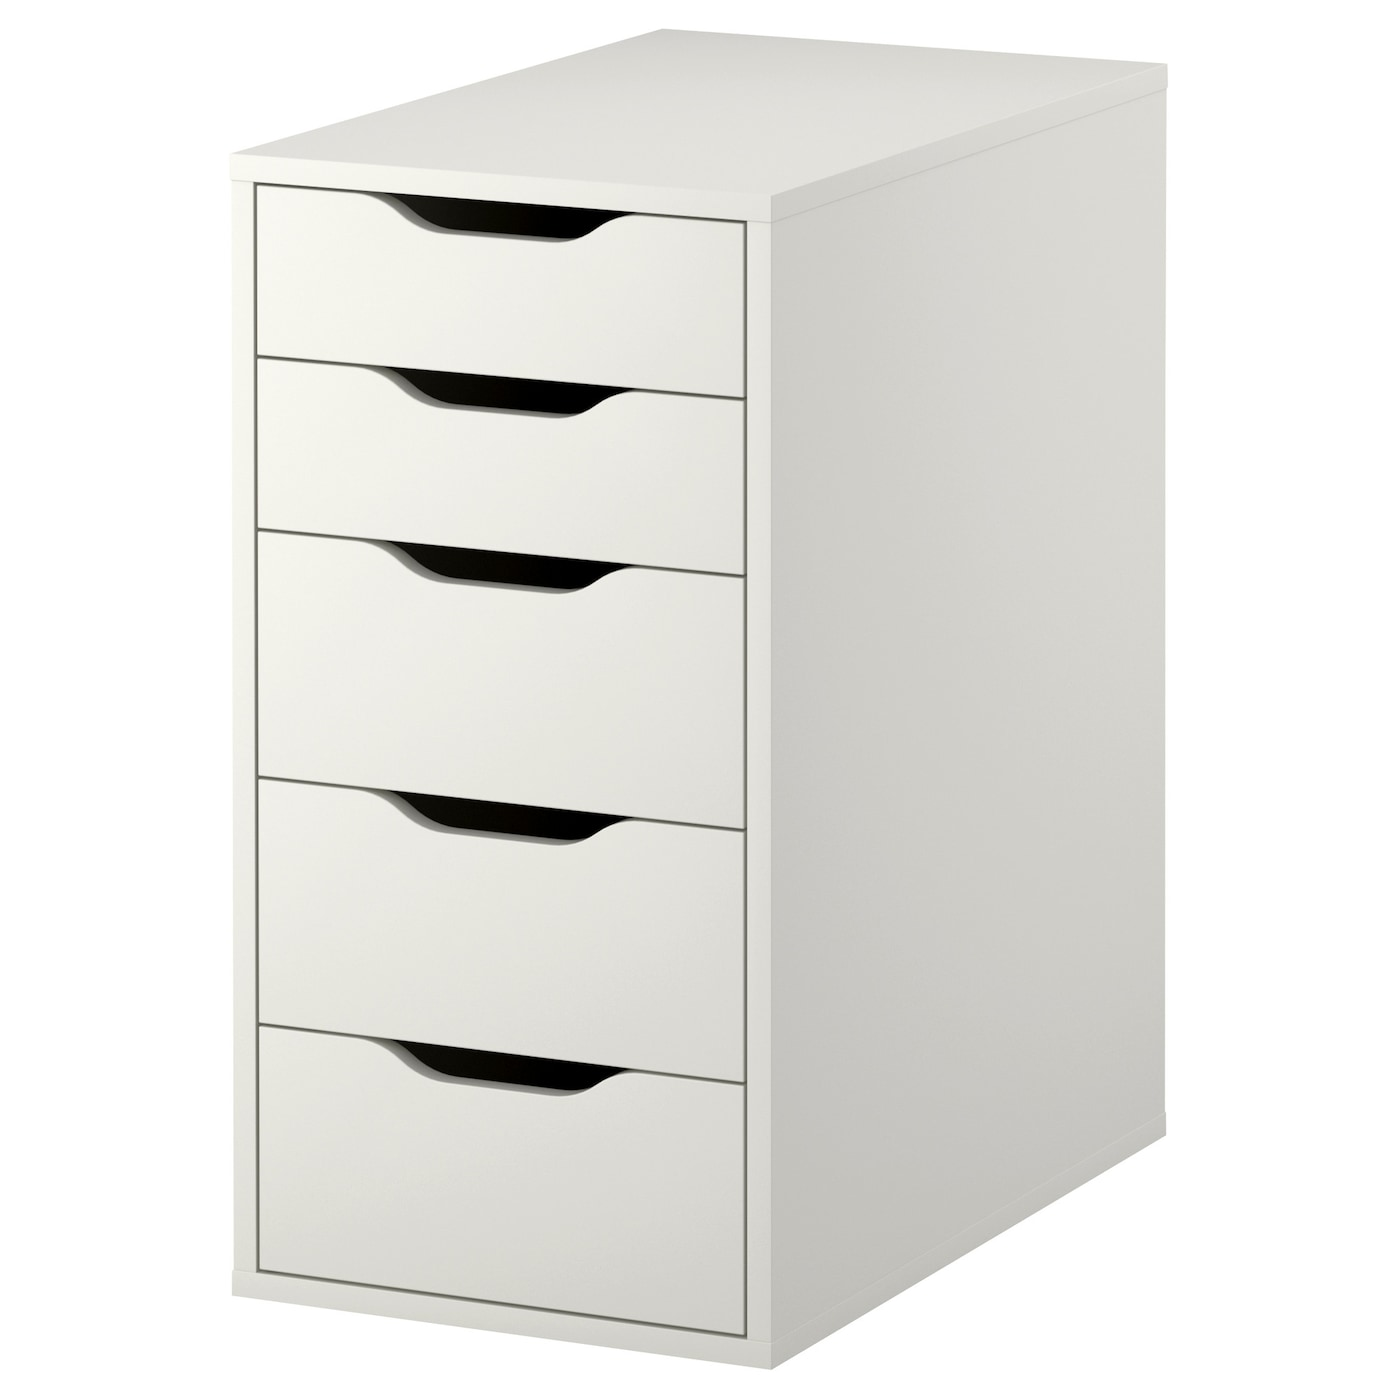 alex drawer unit white 36 x 70 cm ikea. Black Bedroom Furniture Sets. Home Design Ideas